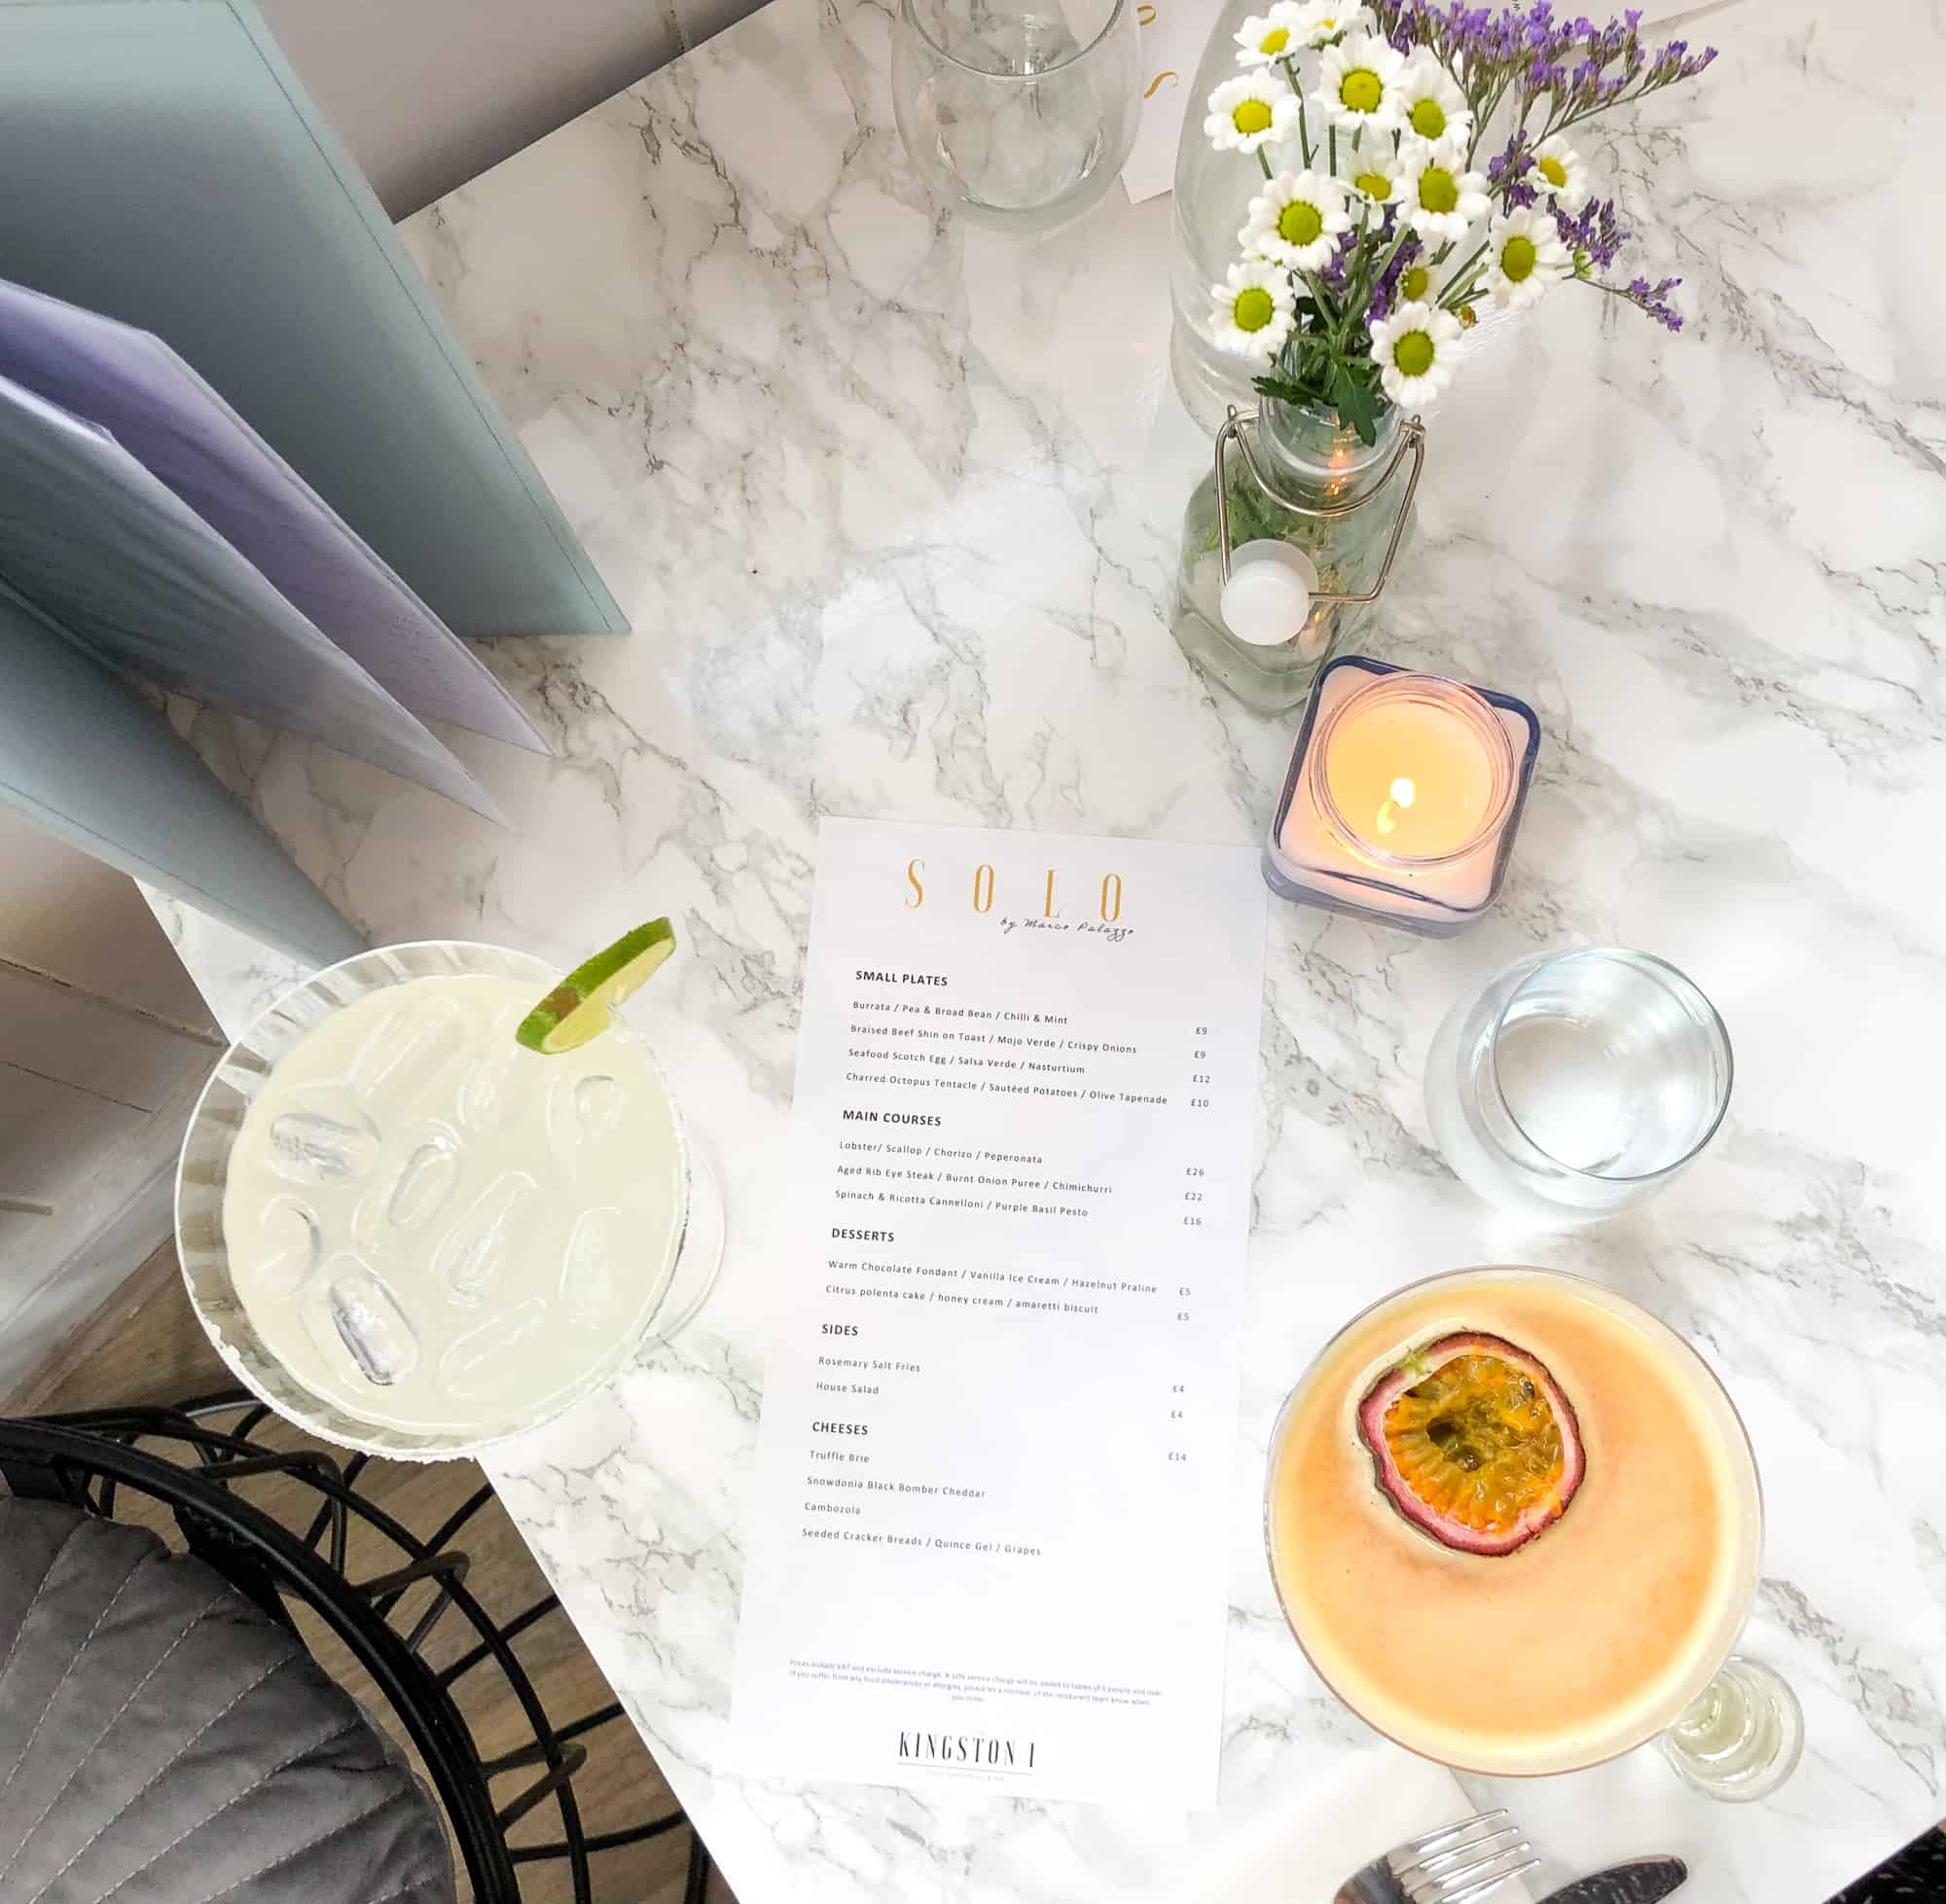 Things to do in Kingston upon Thames - sip cocktails with friends at the Kingston 1 Hotel